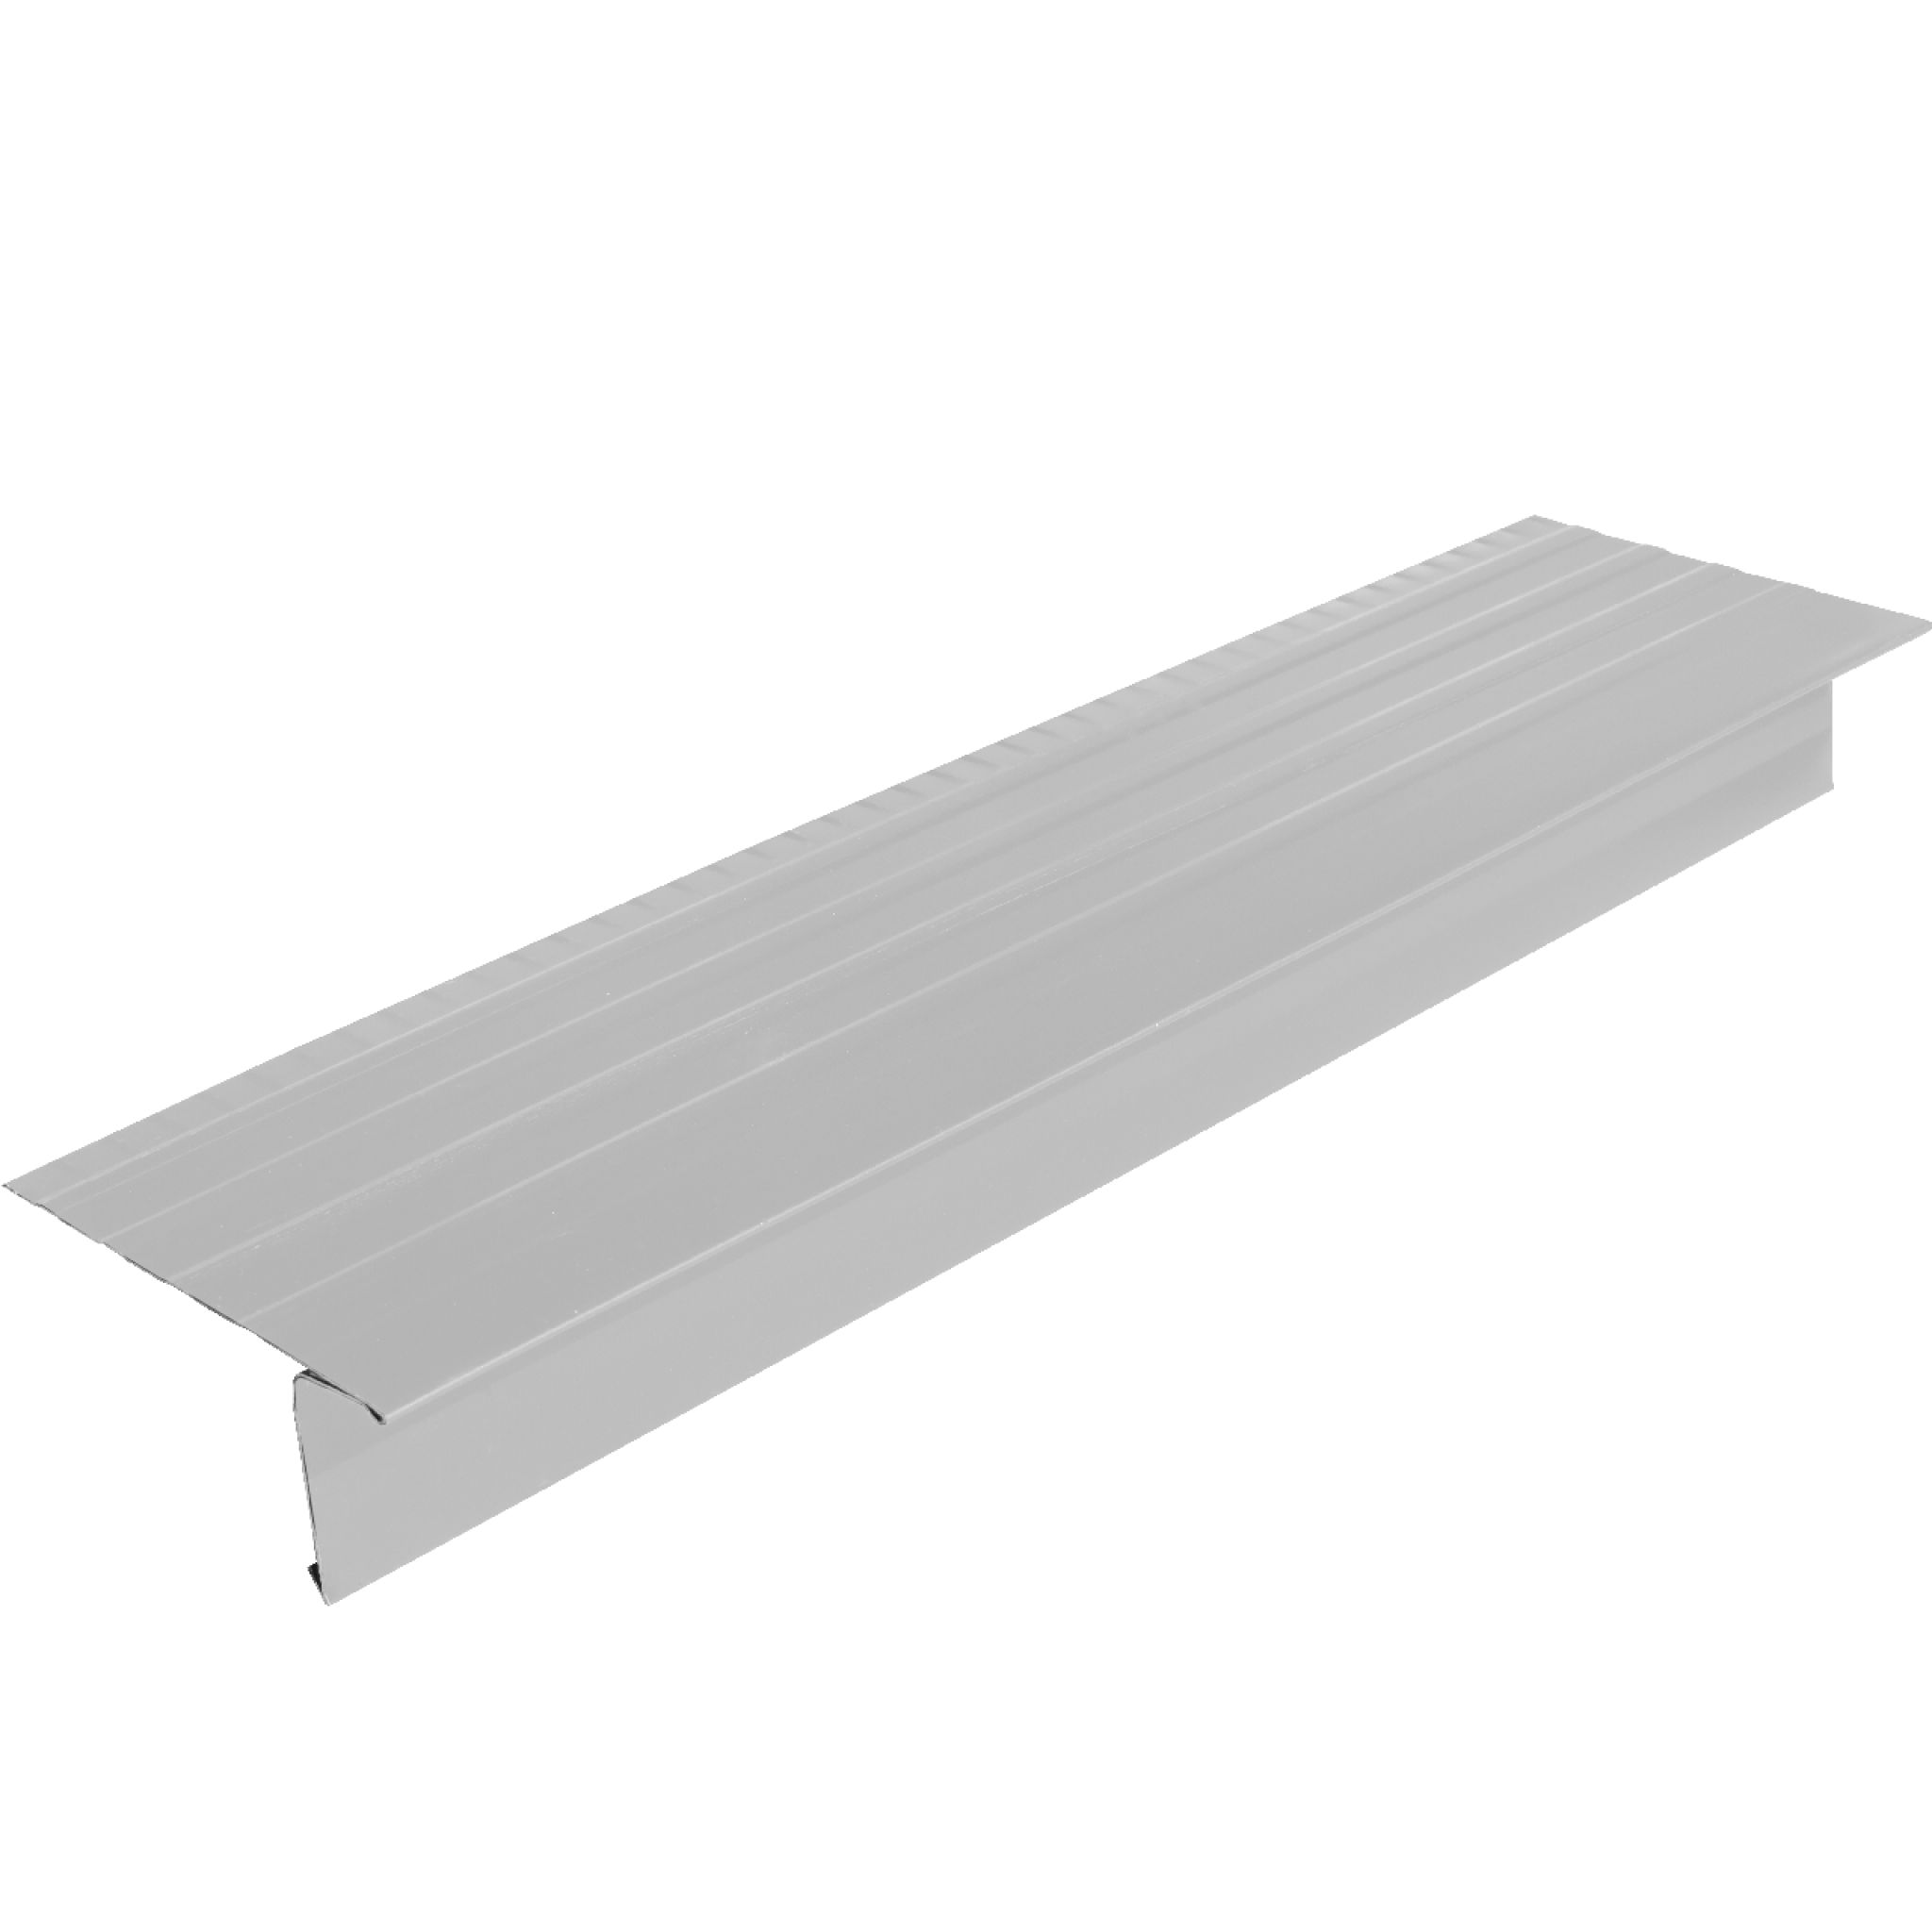 #648 Straight Leg Aluminum Roof Edge